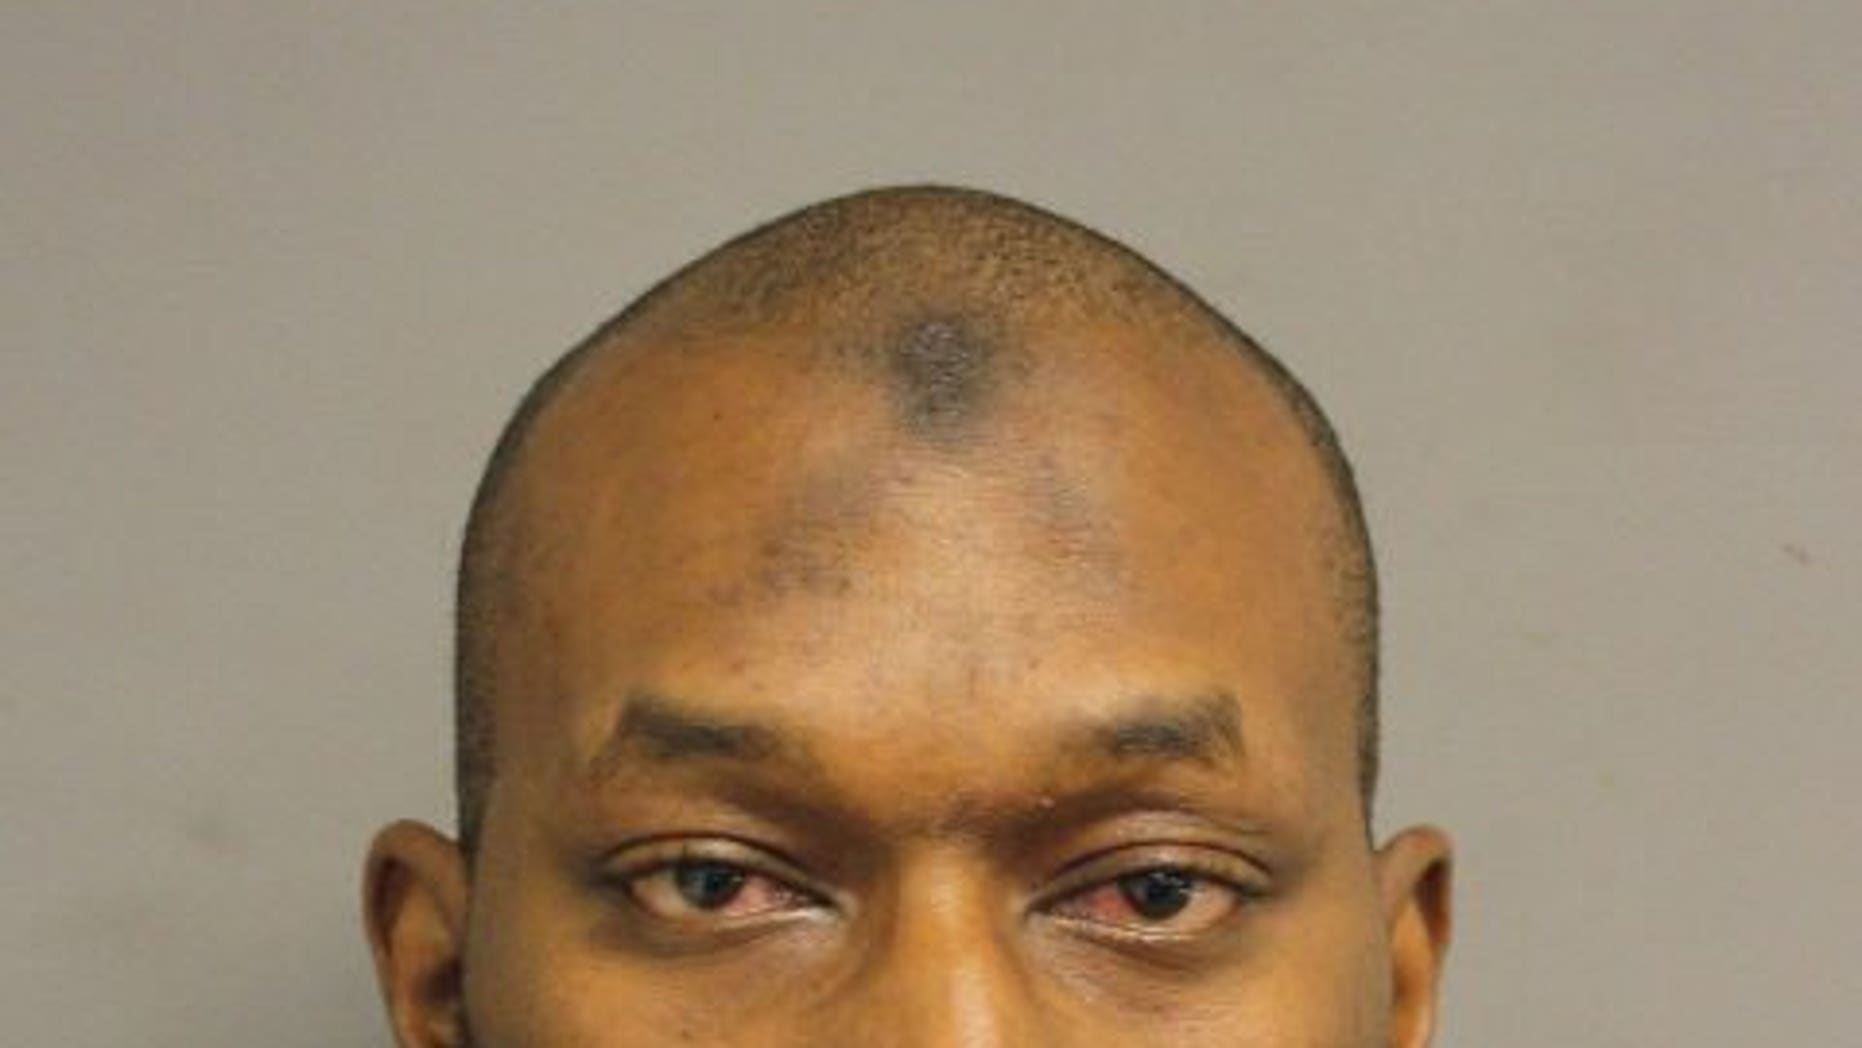 Gary Nathaniel Moore has been charged with arson.